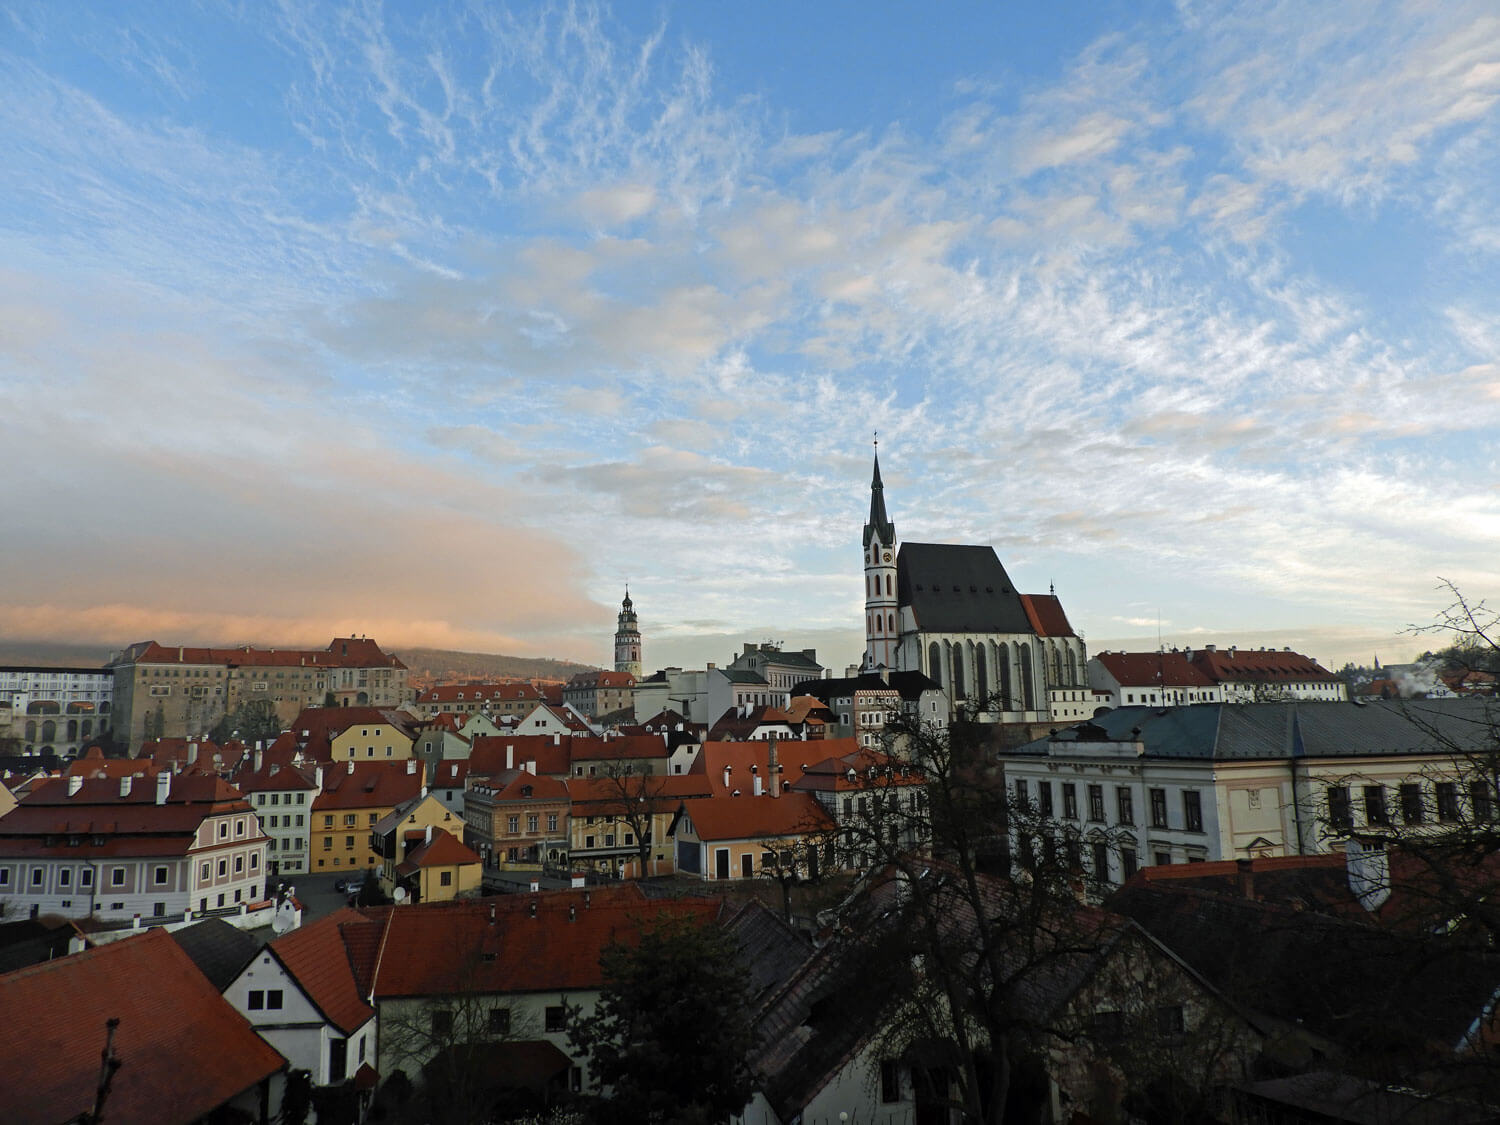 czech-cesky-city-church-town-sunrise-morning-sky.jpg.jpg